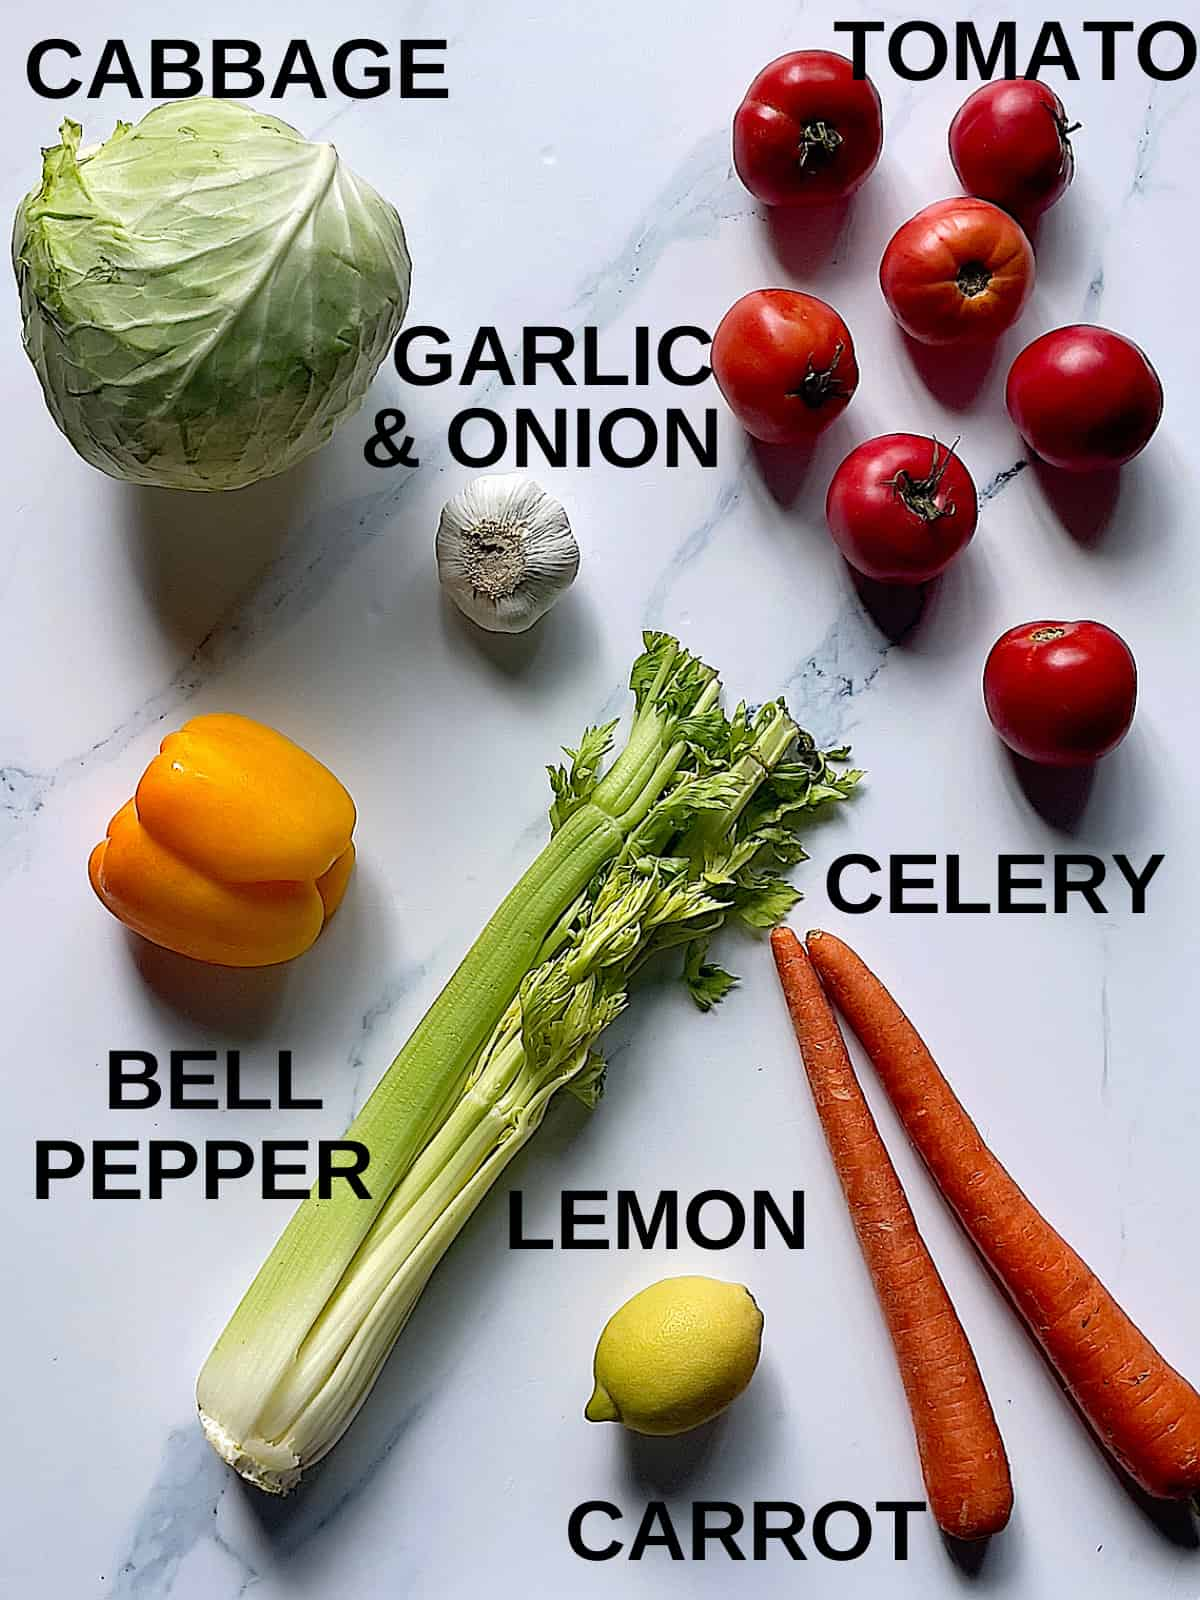 tomato, cabbage, bell pepper, garlic, celery, carrots, and lemon on a white background